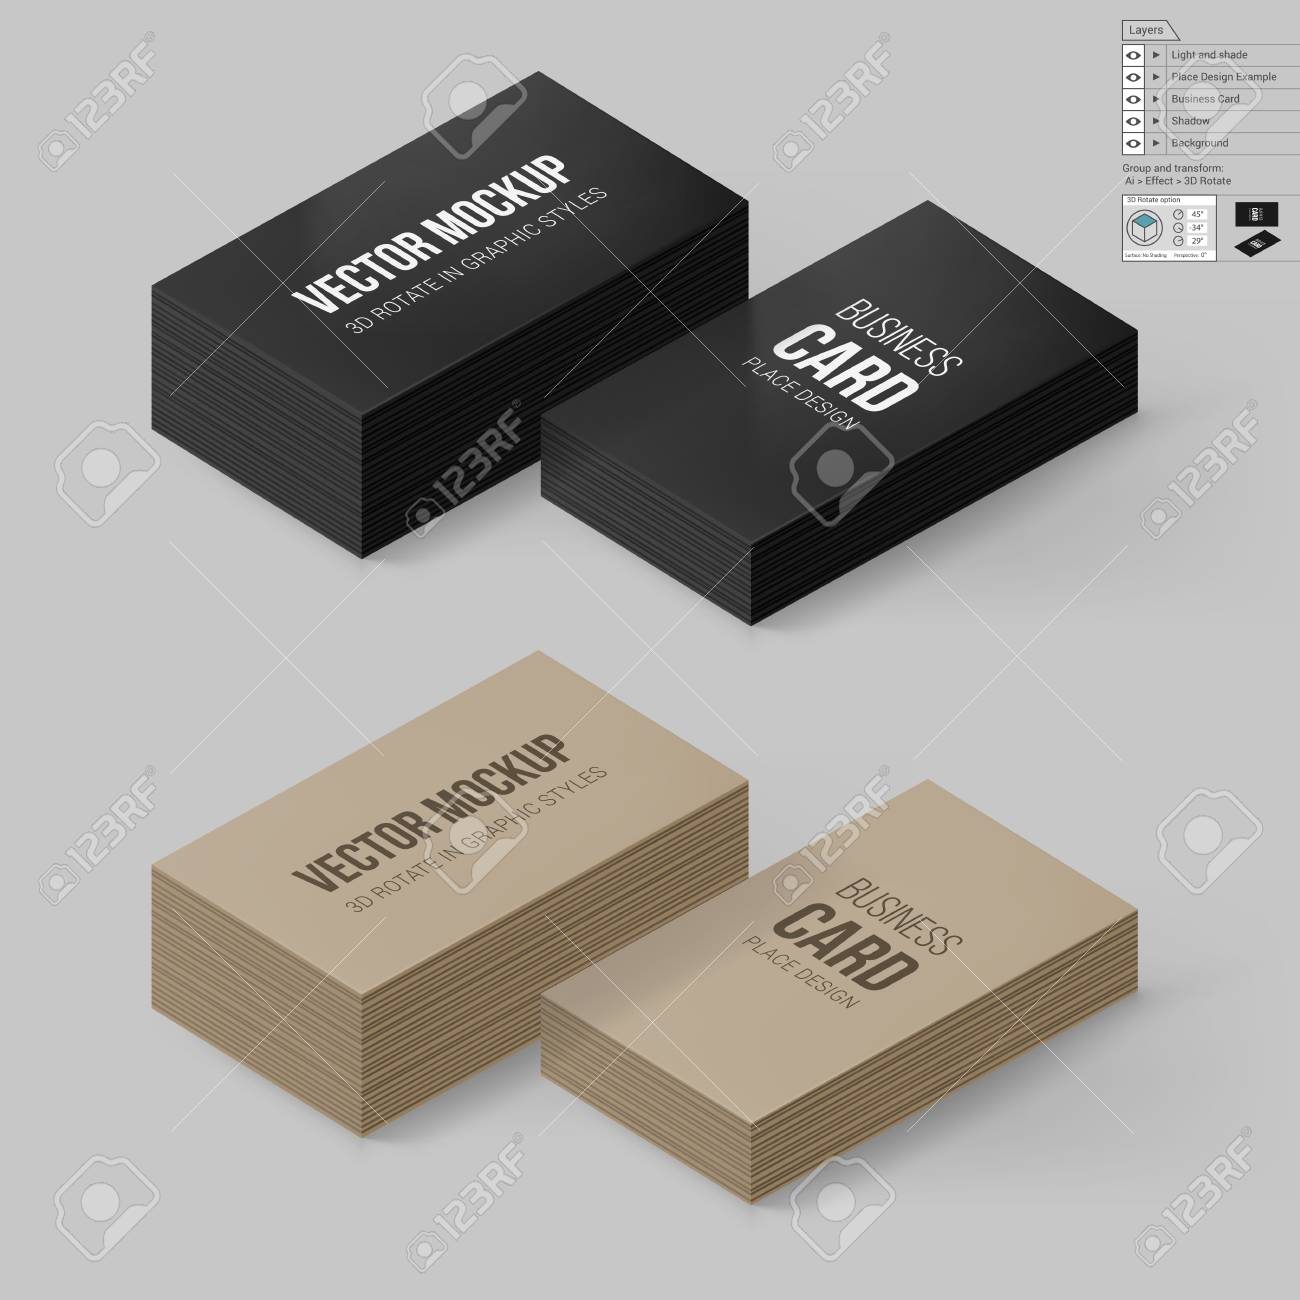 Business cards template in black and brown colors corporate business cards template in black and brown colors corporate identity branding mock up with flashek